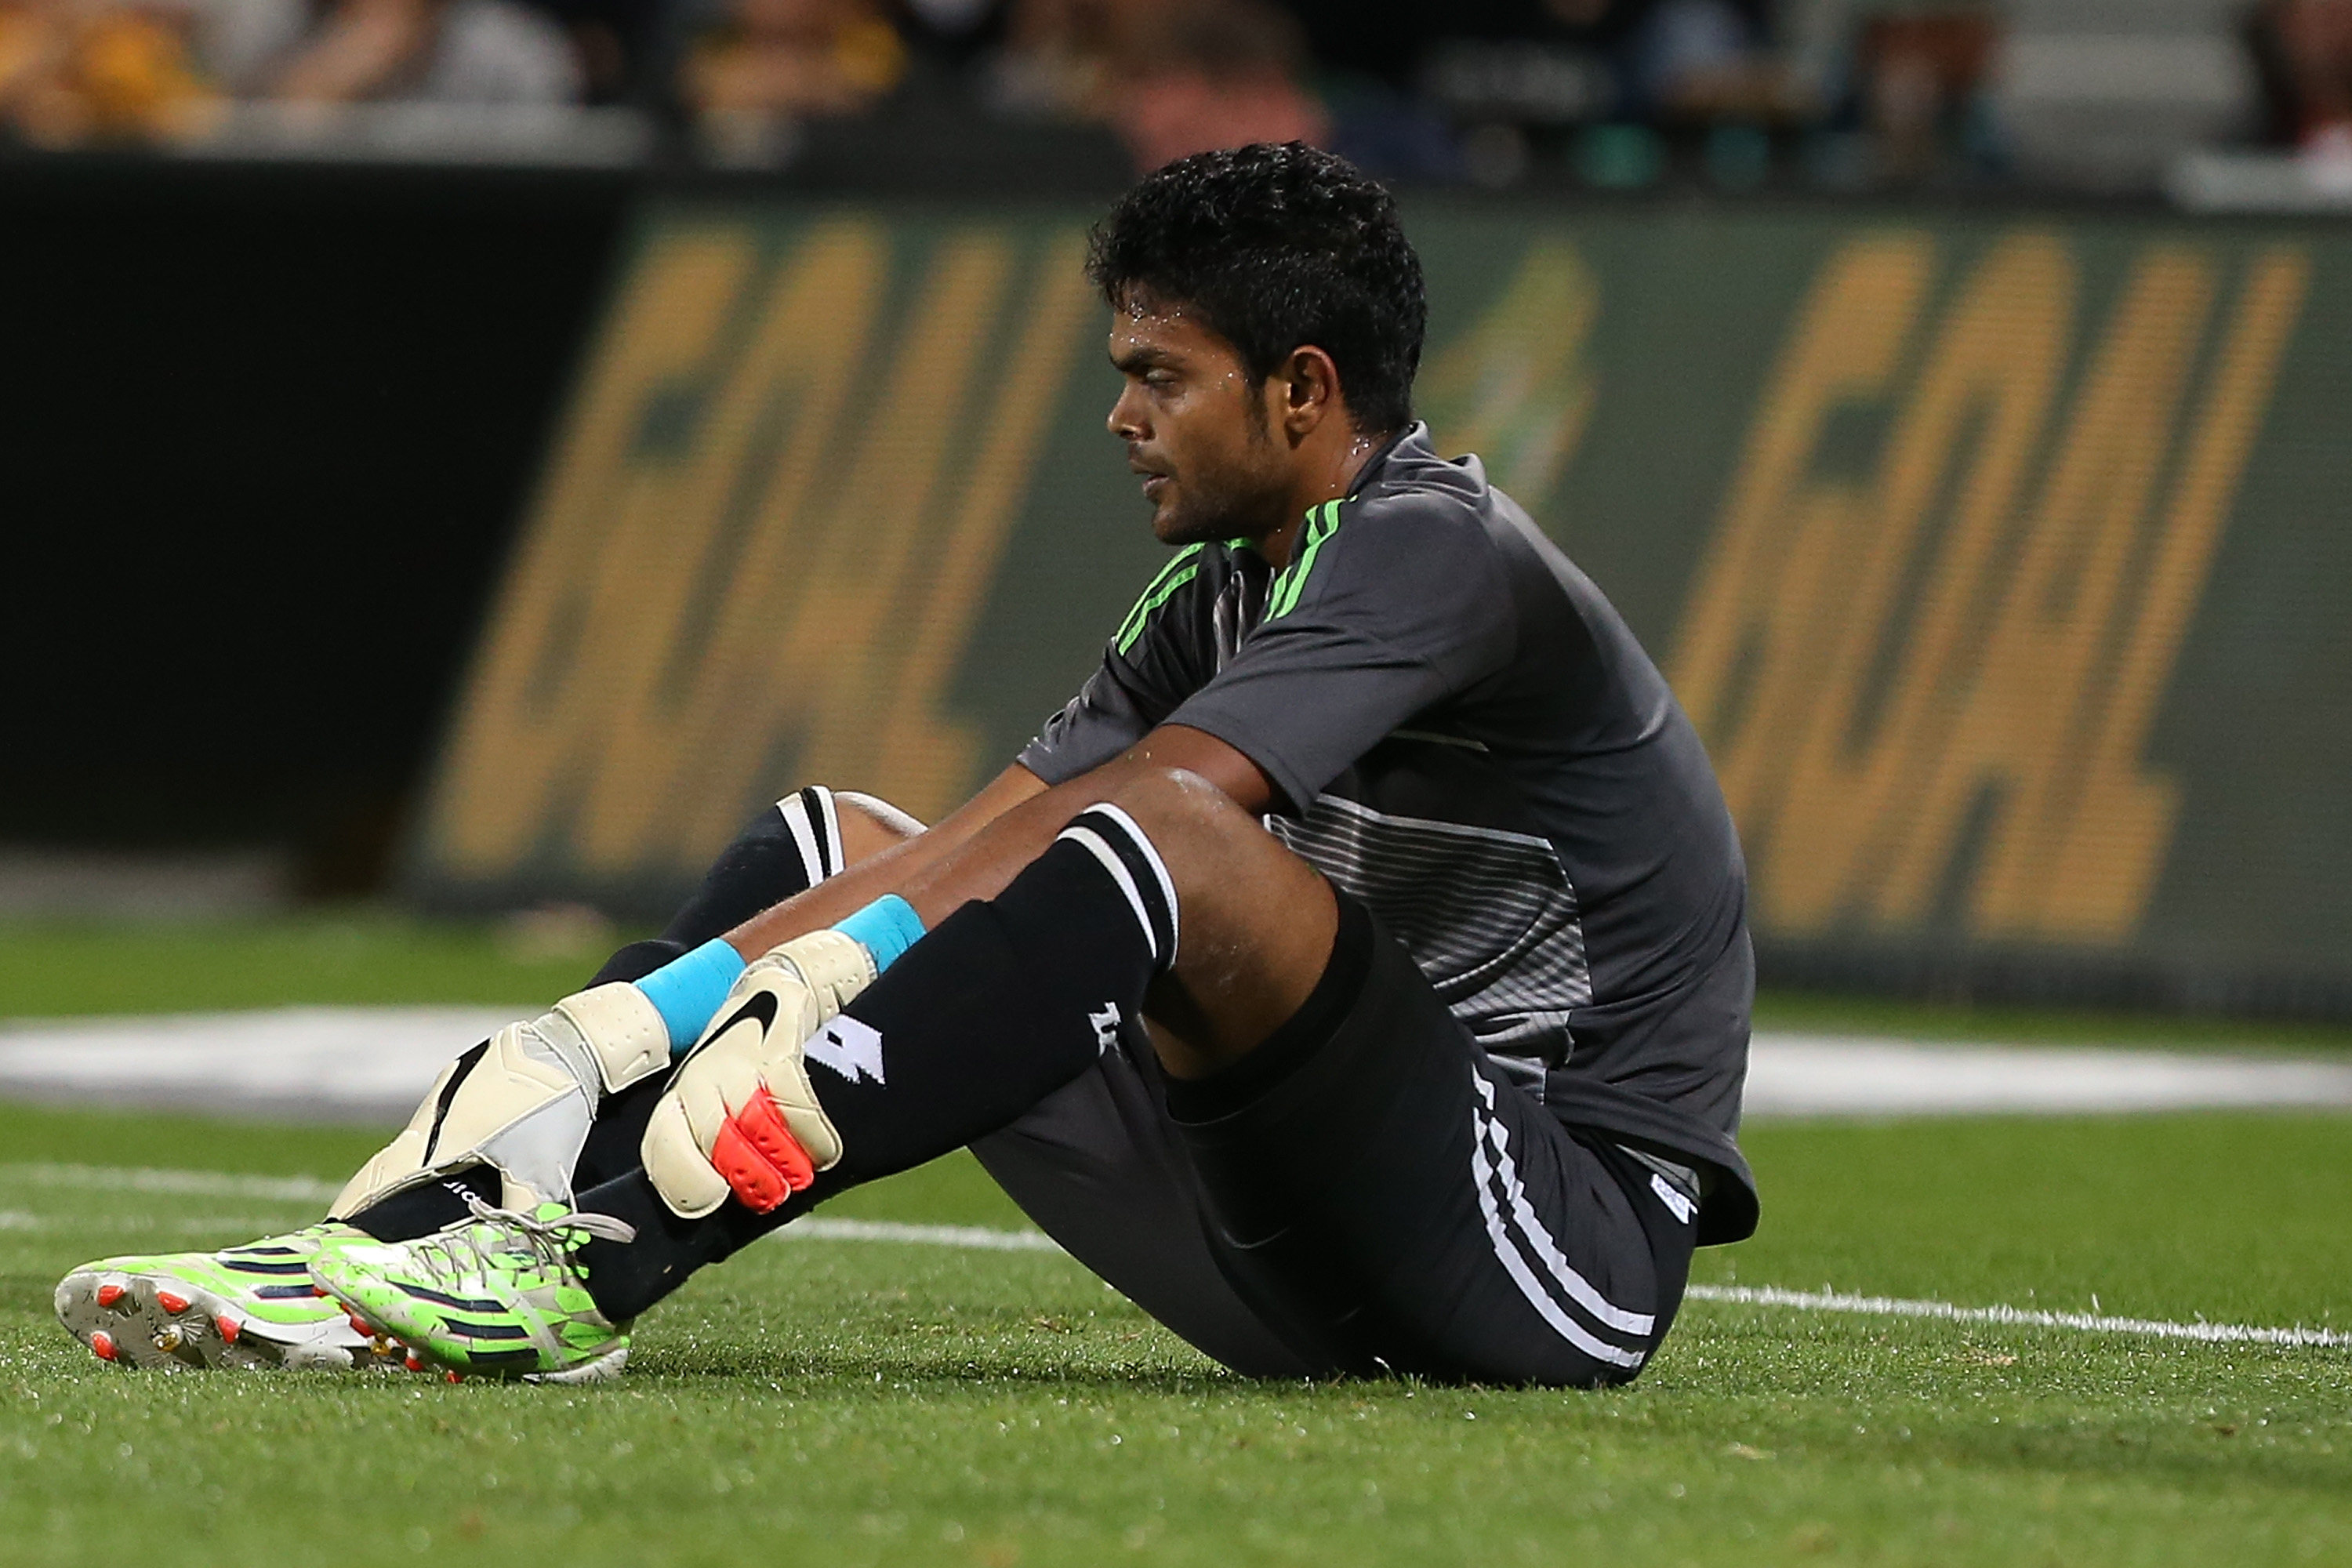 Bangladeshi keeper Alam Sahidul looks on after conceding a fourth goal inside the first half.